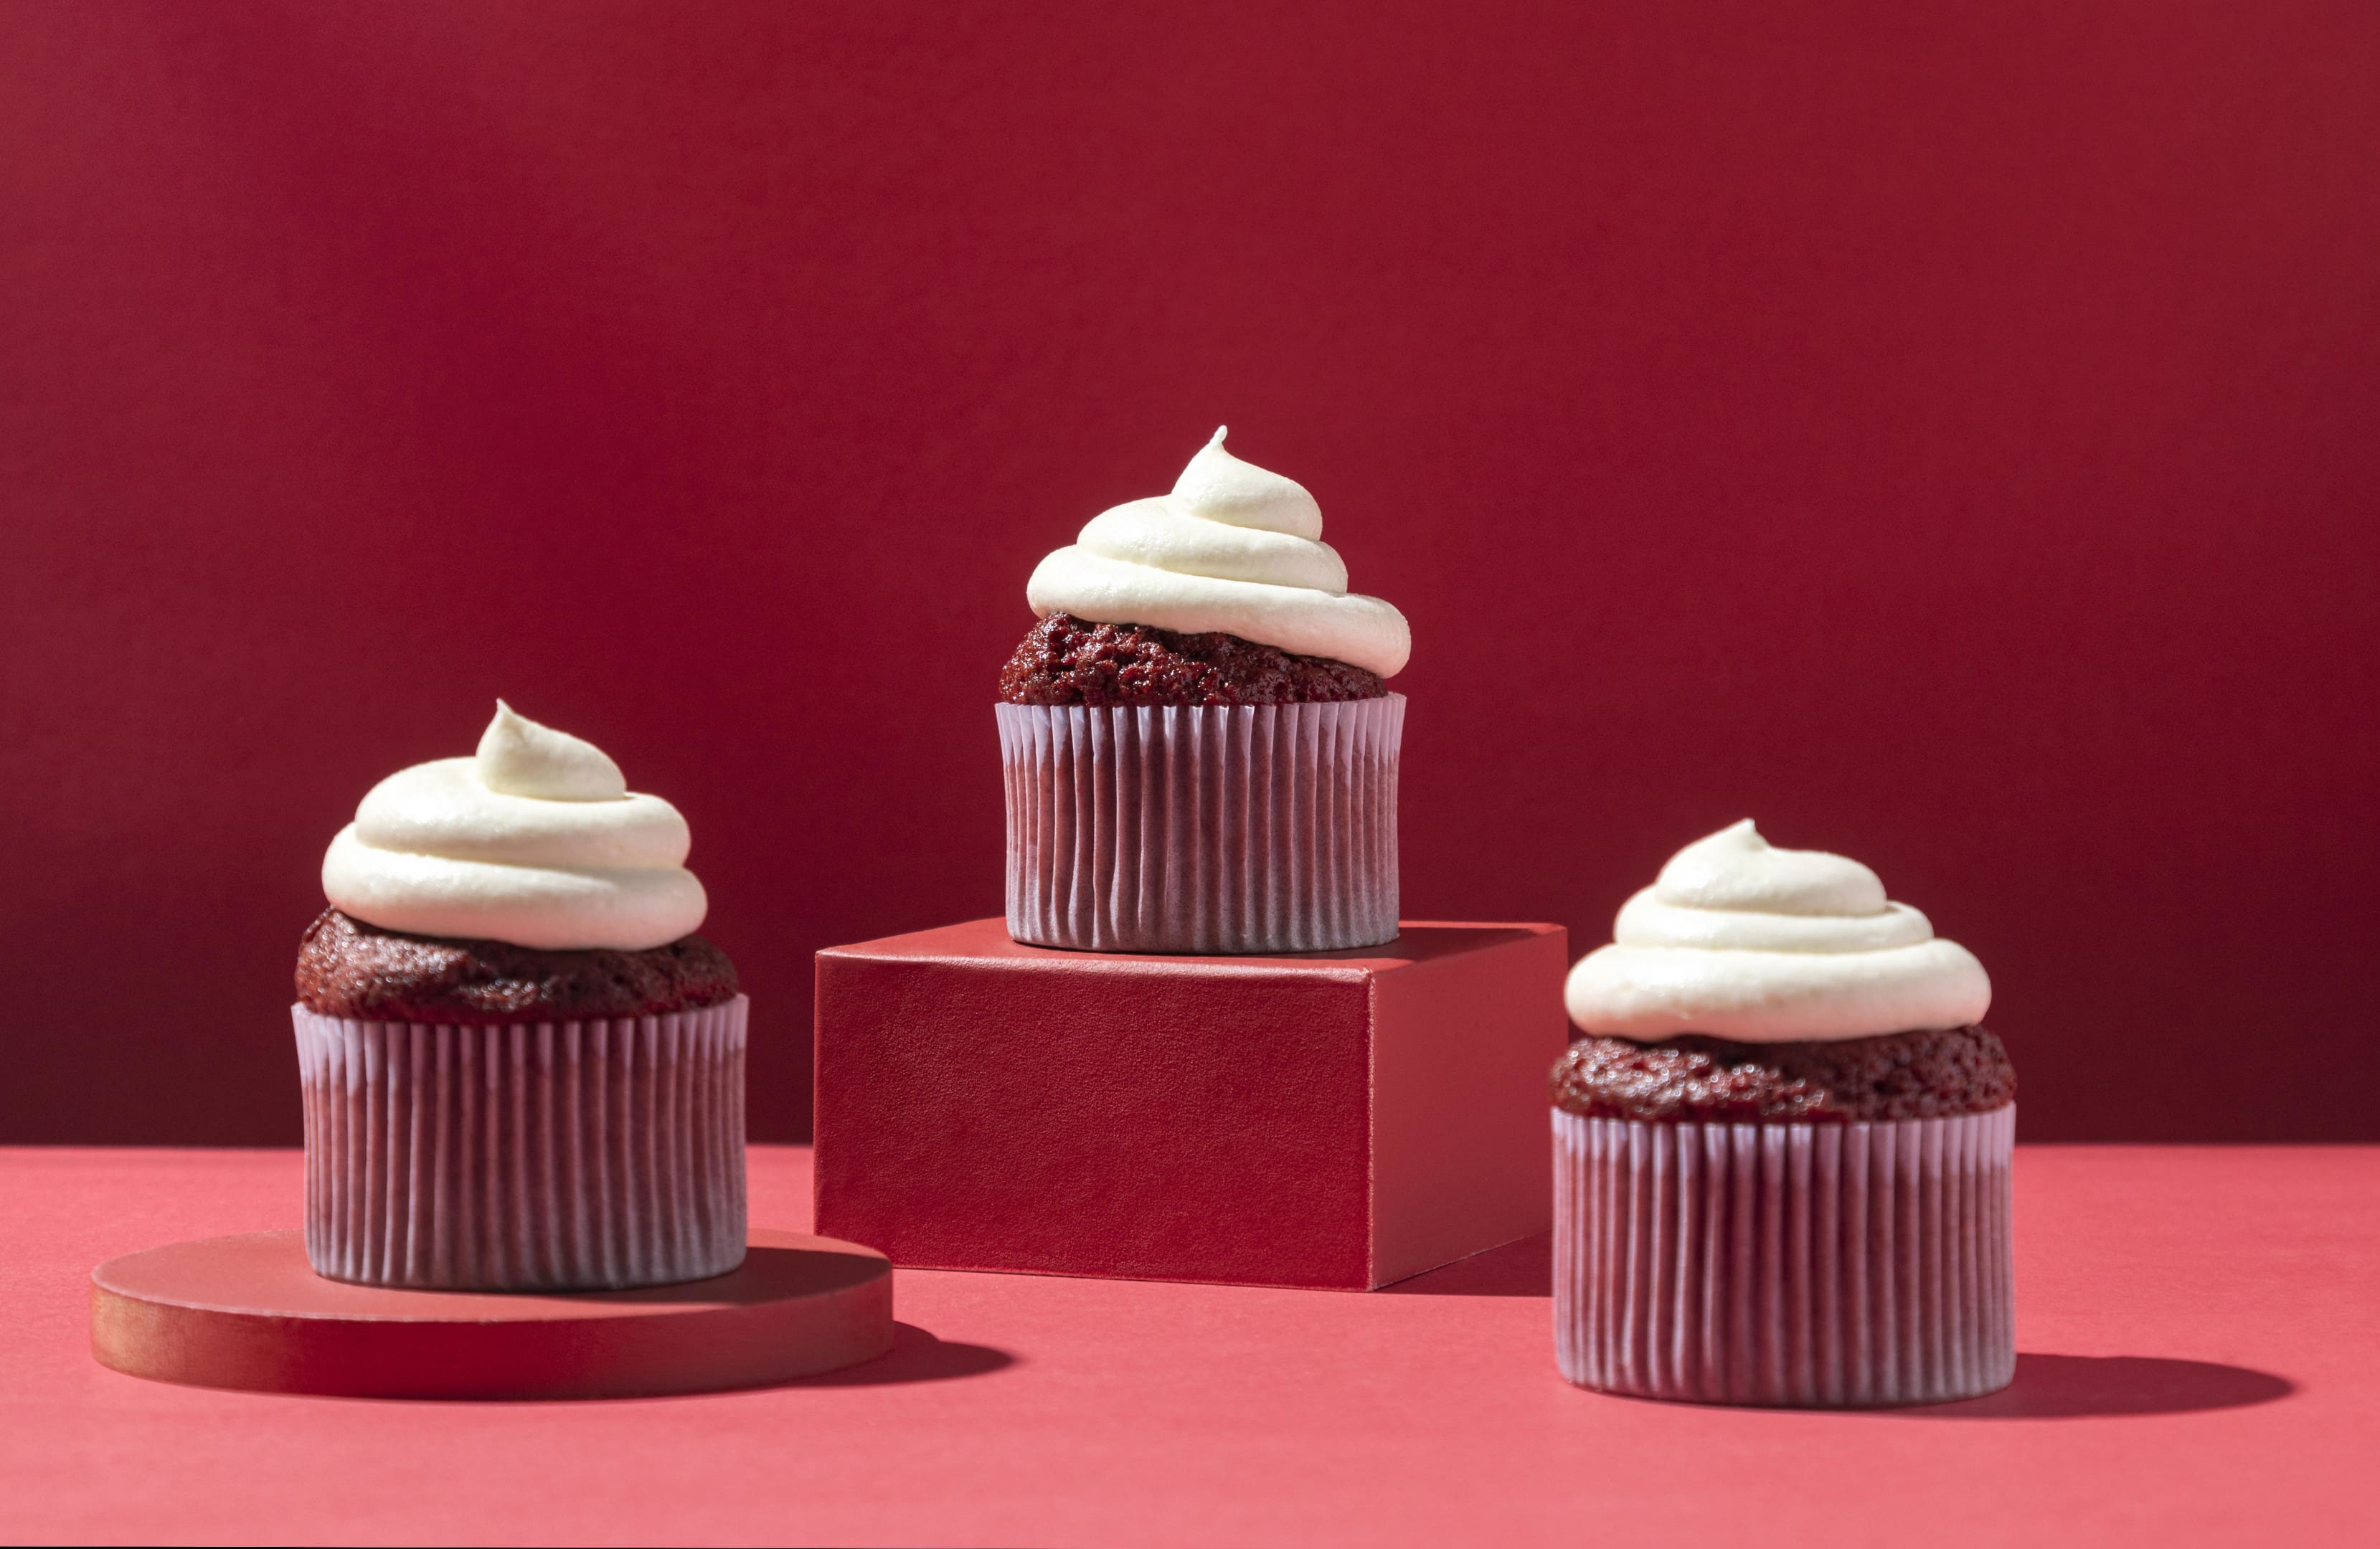 Red velvet cupcakes with cream on red background